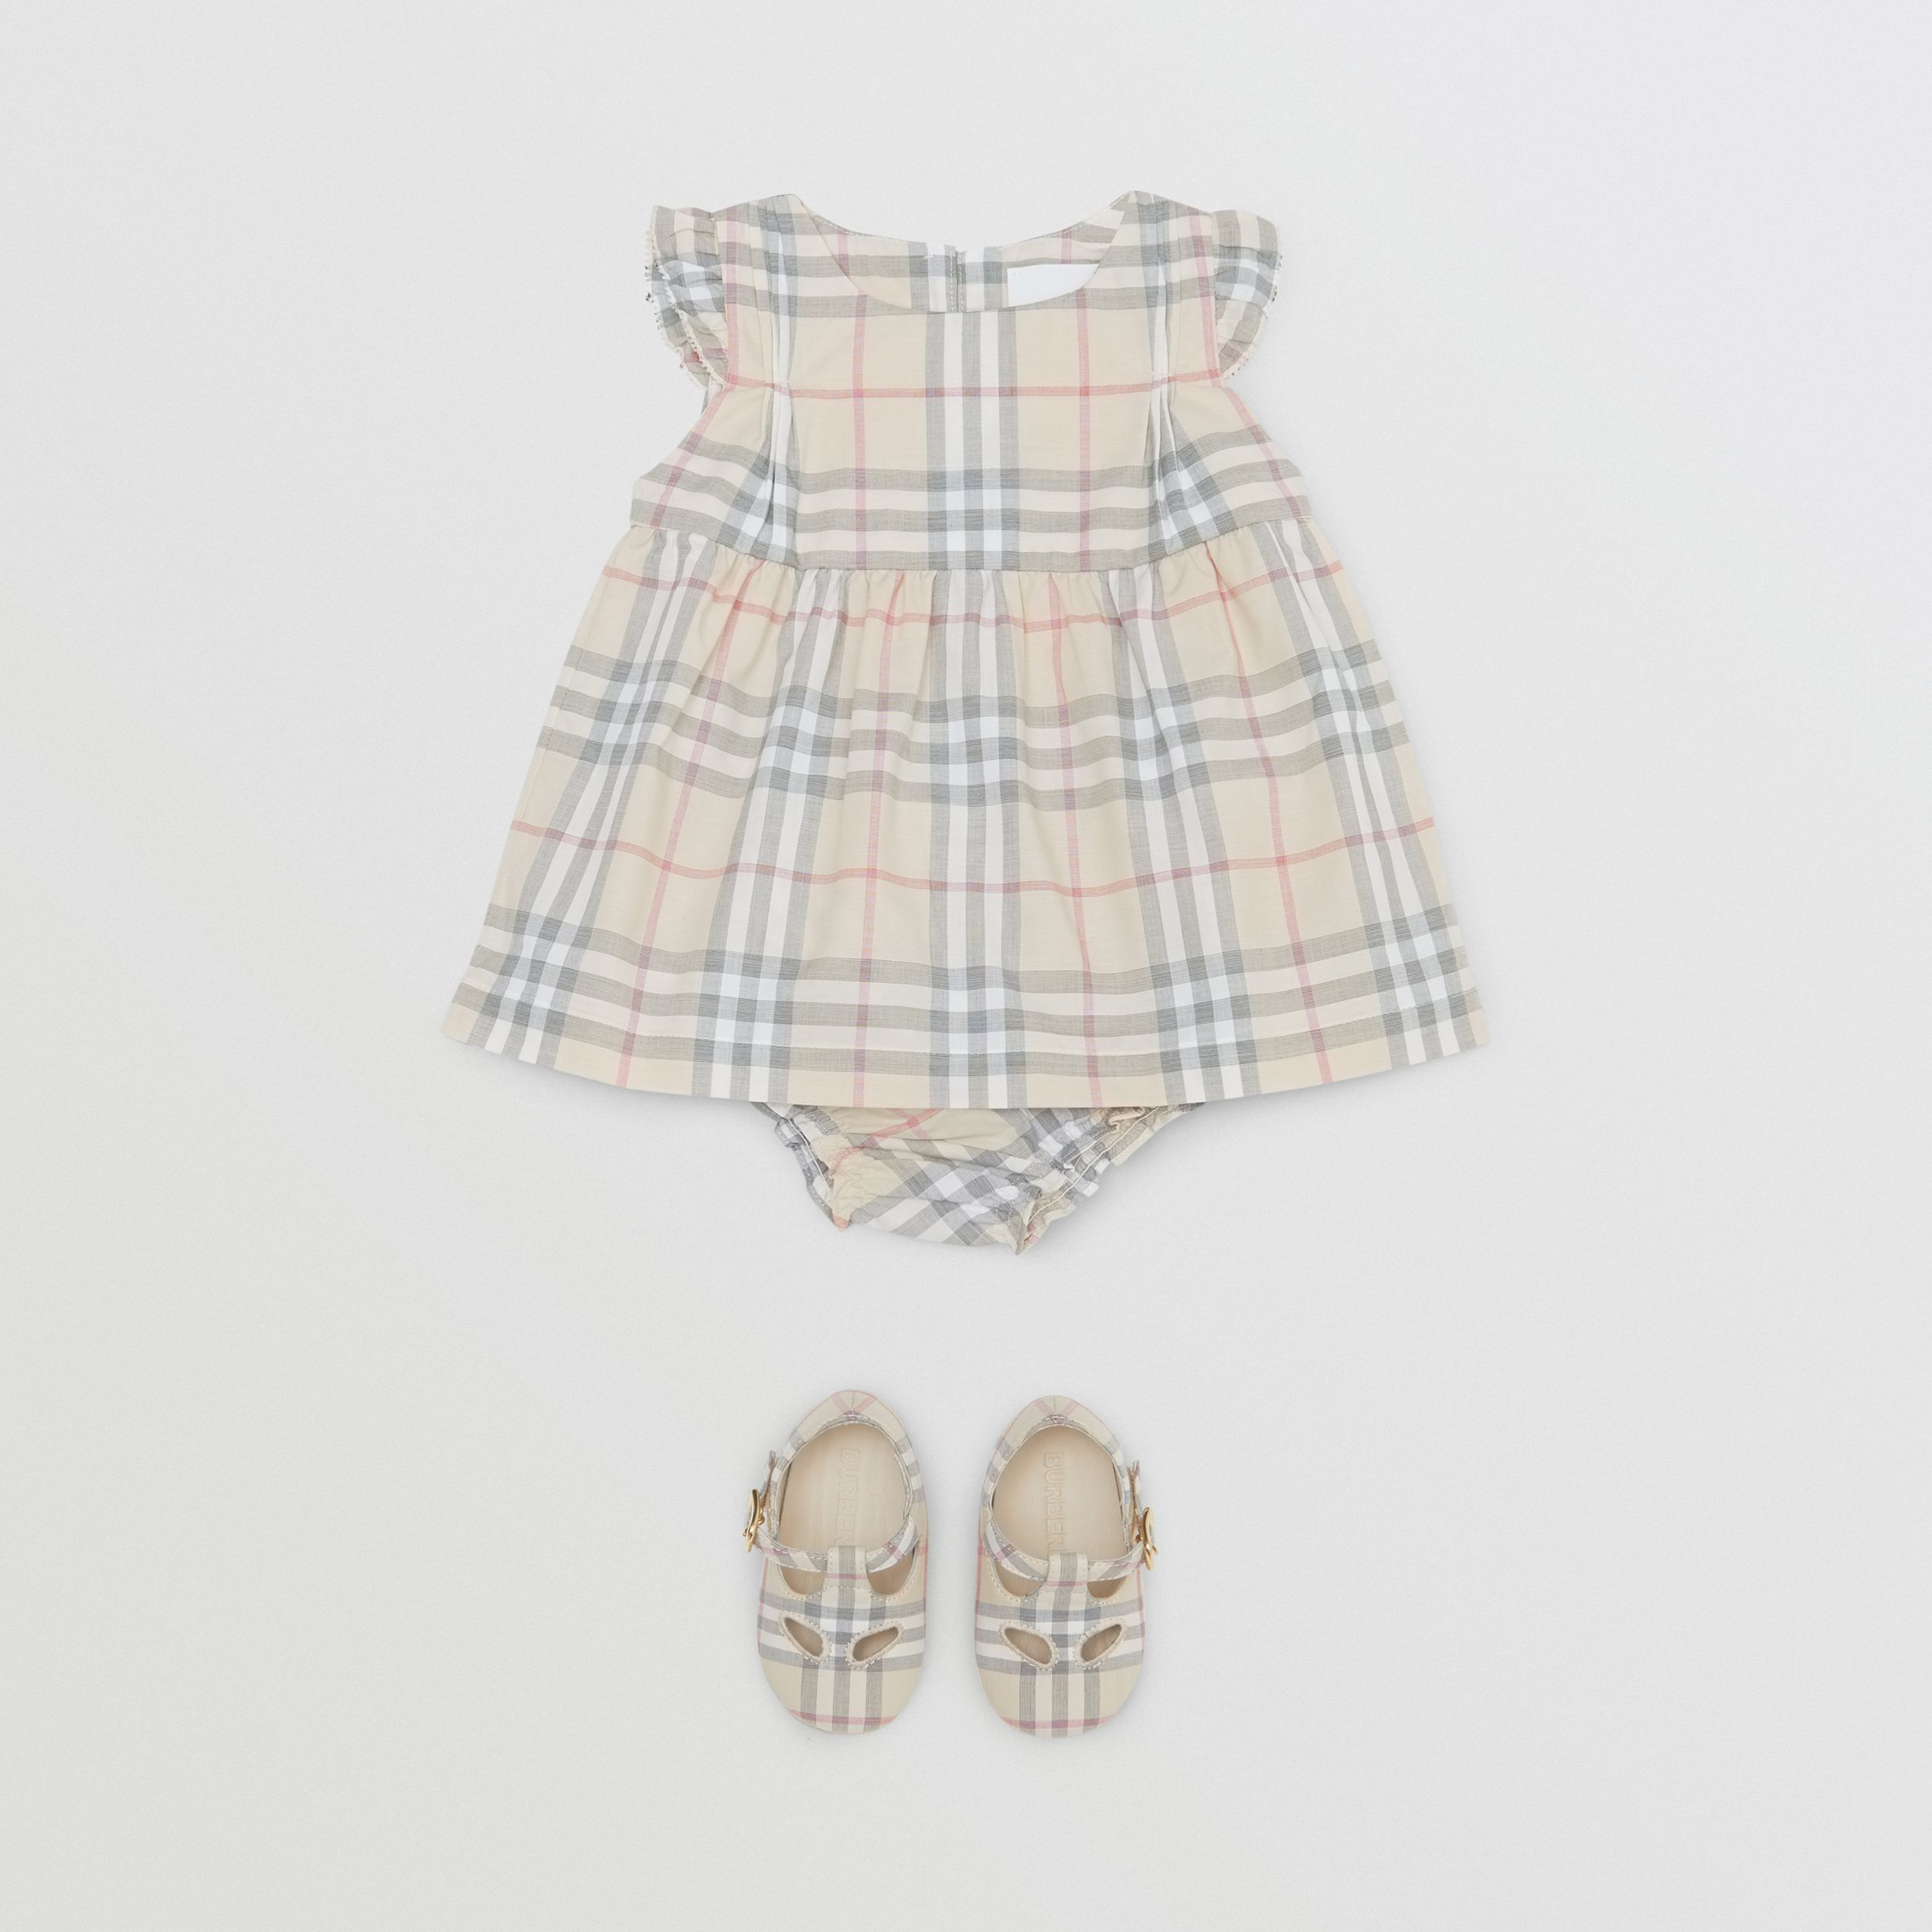 Robe et bloomer en coton check à volants (Stone Pâle) - Enfant | Burberry - 3